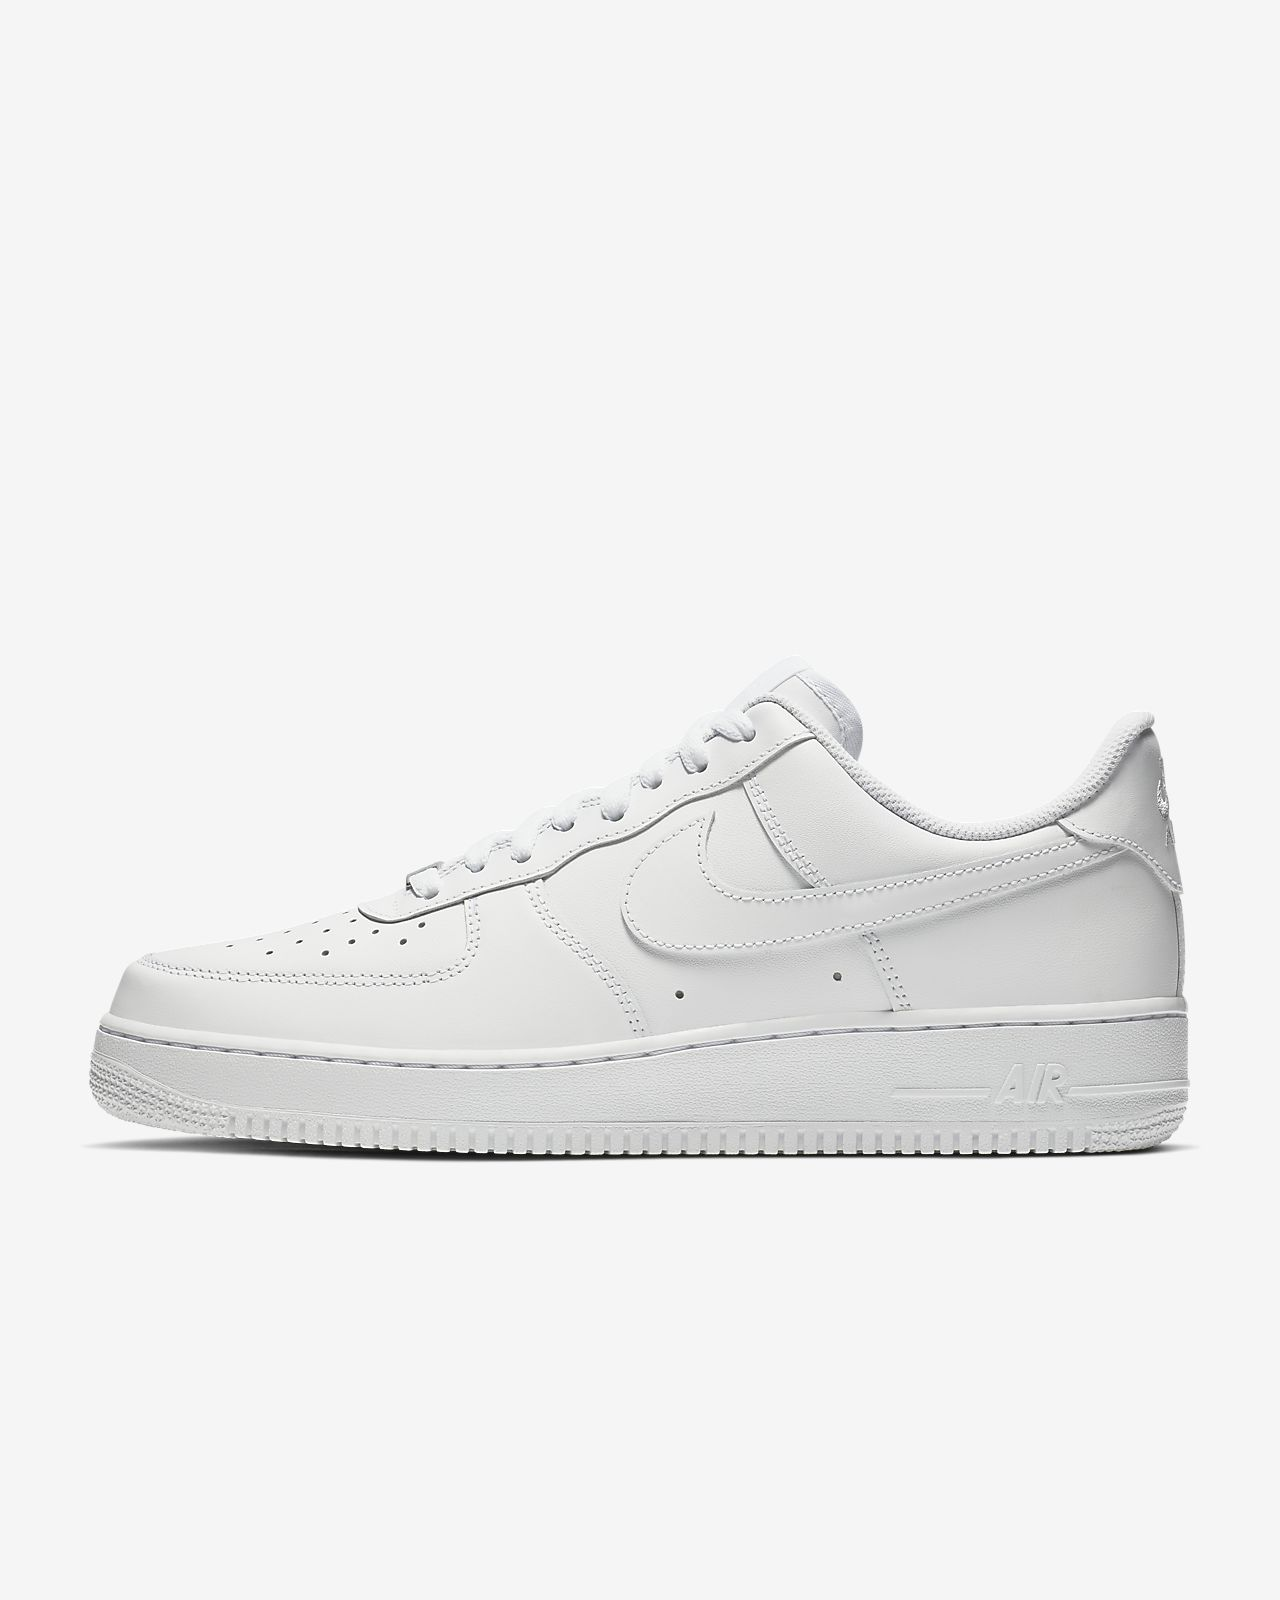 1b00478b17 Nike Air Force 1 '07 Shoe. Nike.com CA